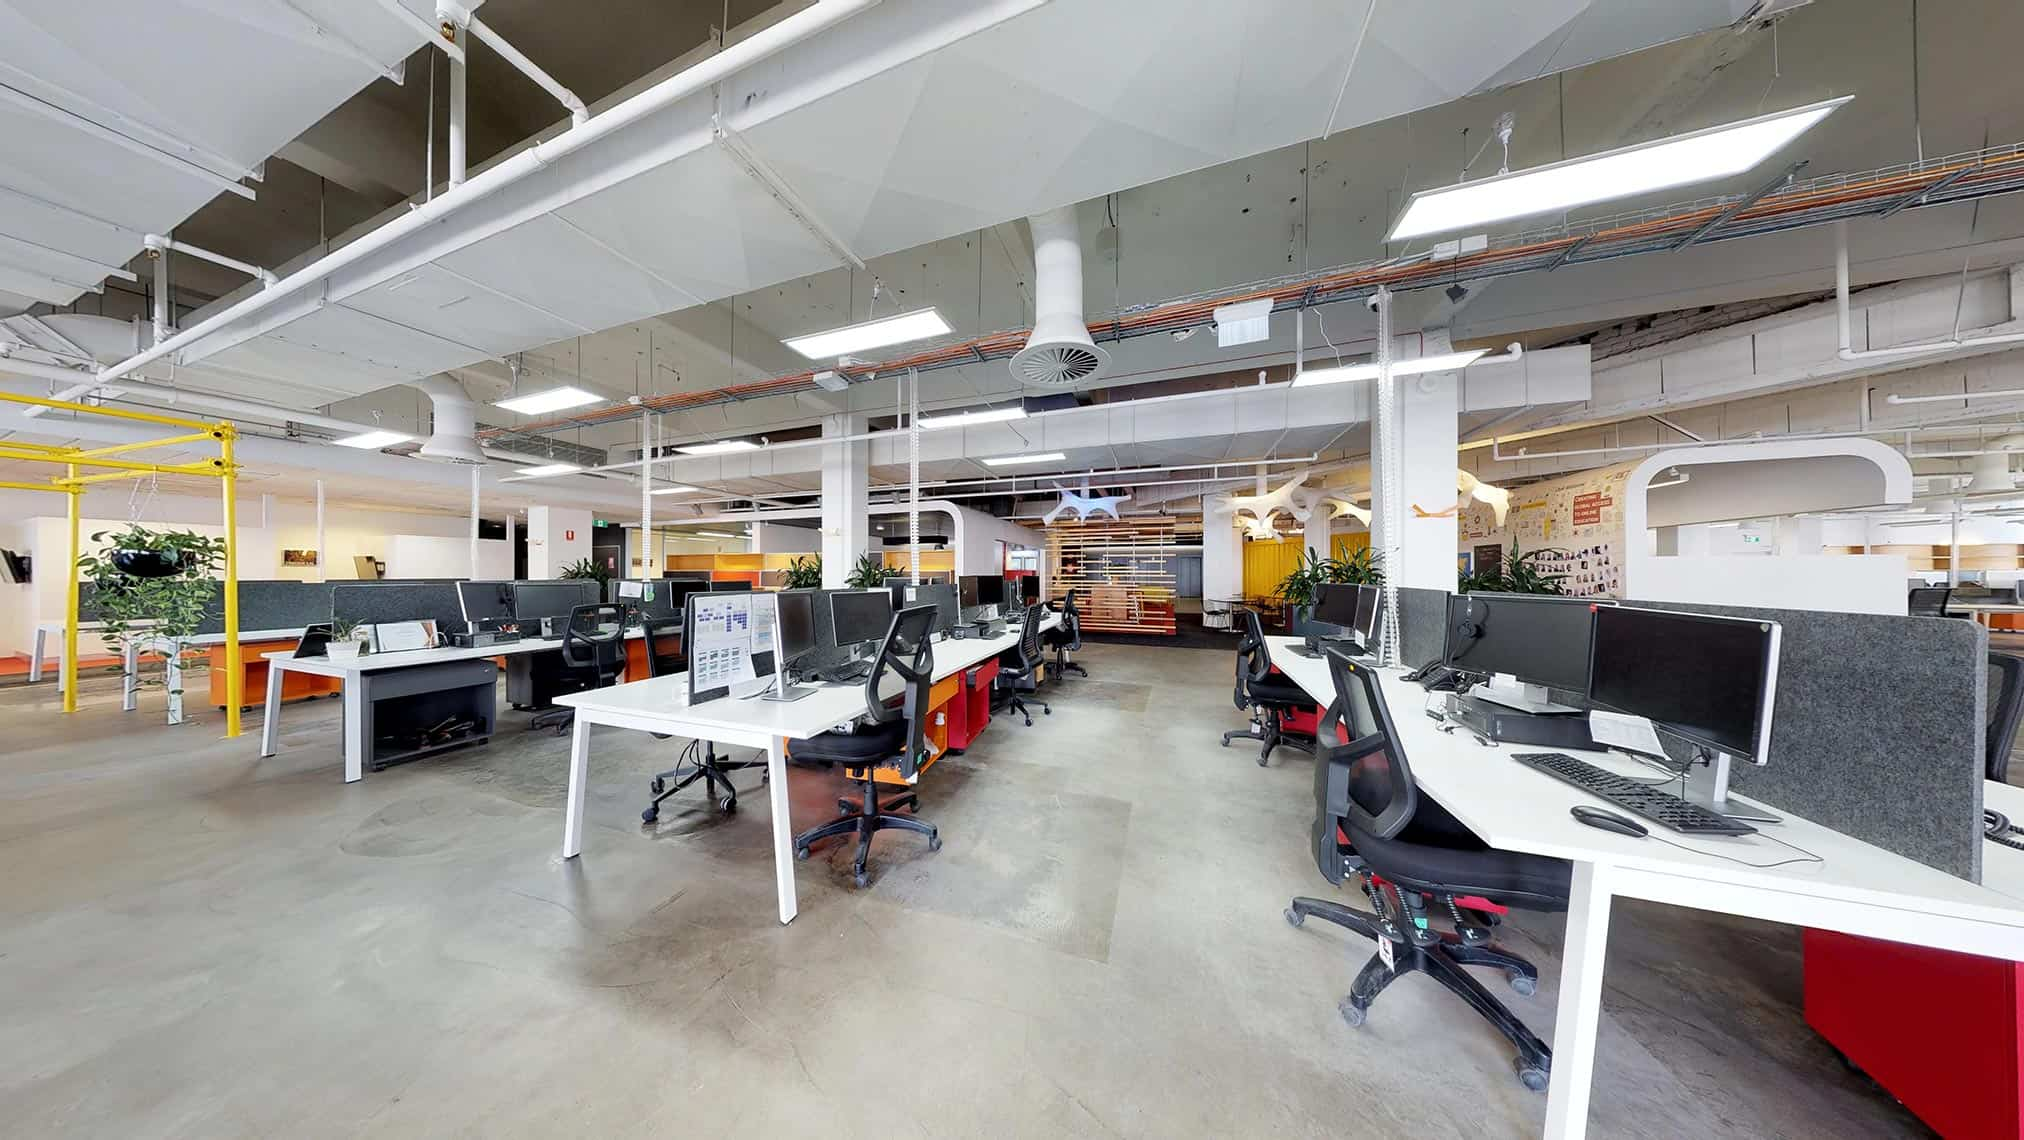 Pick Out a Productive Office Layout to Help Your Business Grow